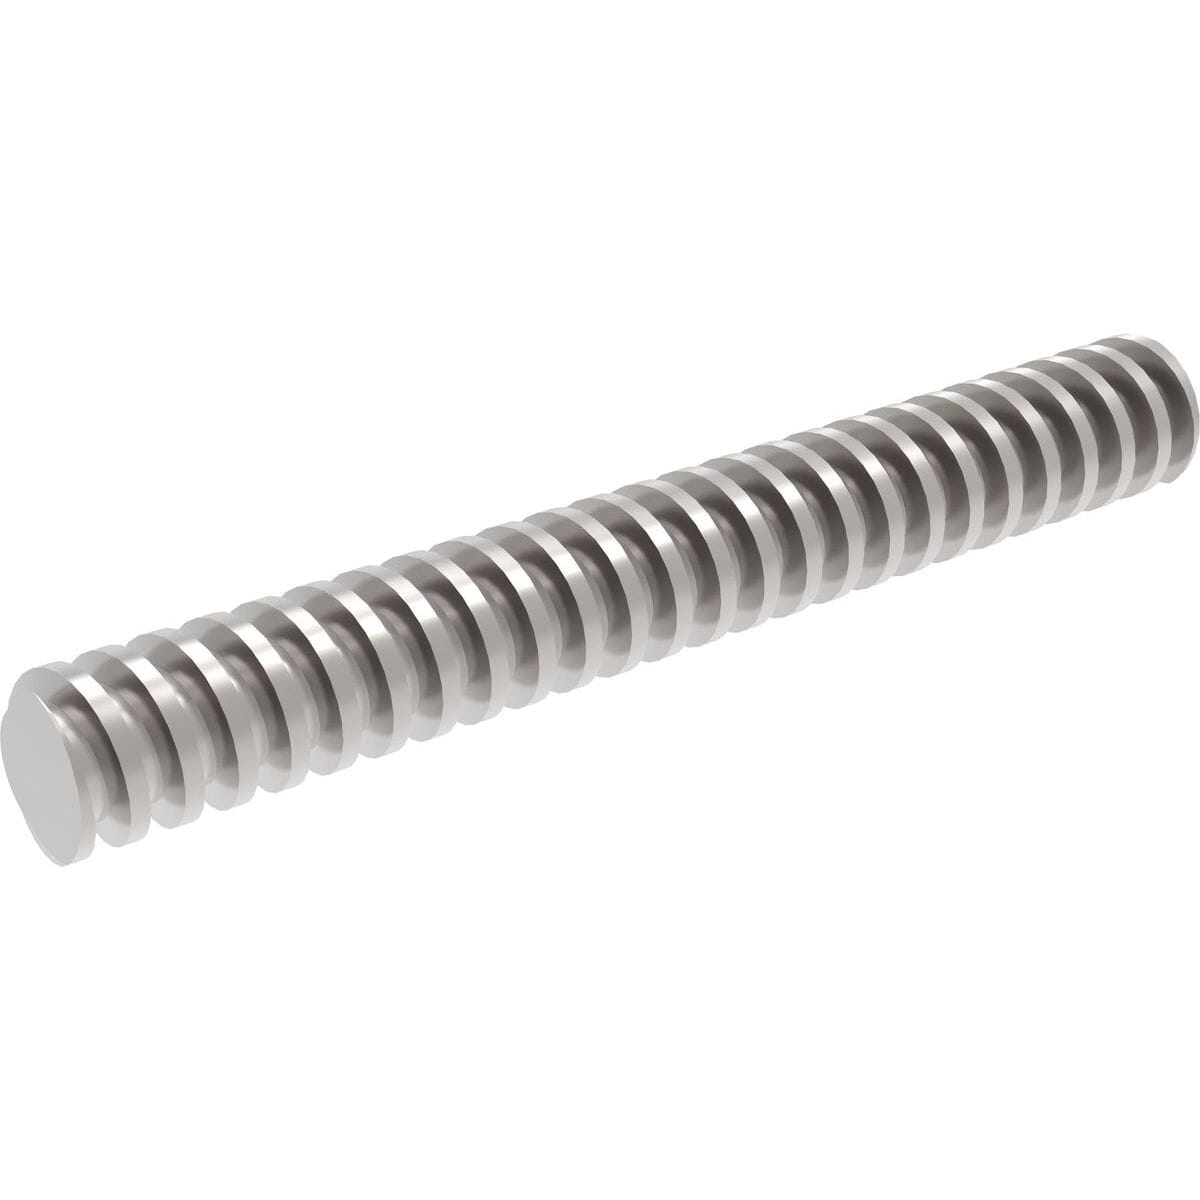 TR24x5 (24mm x 5mm Lead) x 230mm Trapezoidal Lead Screws - 316 Stainless Steel